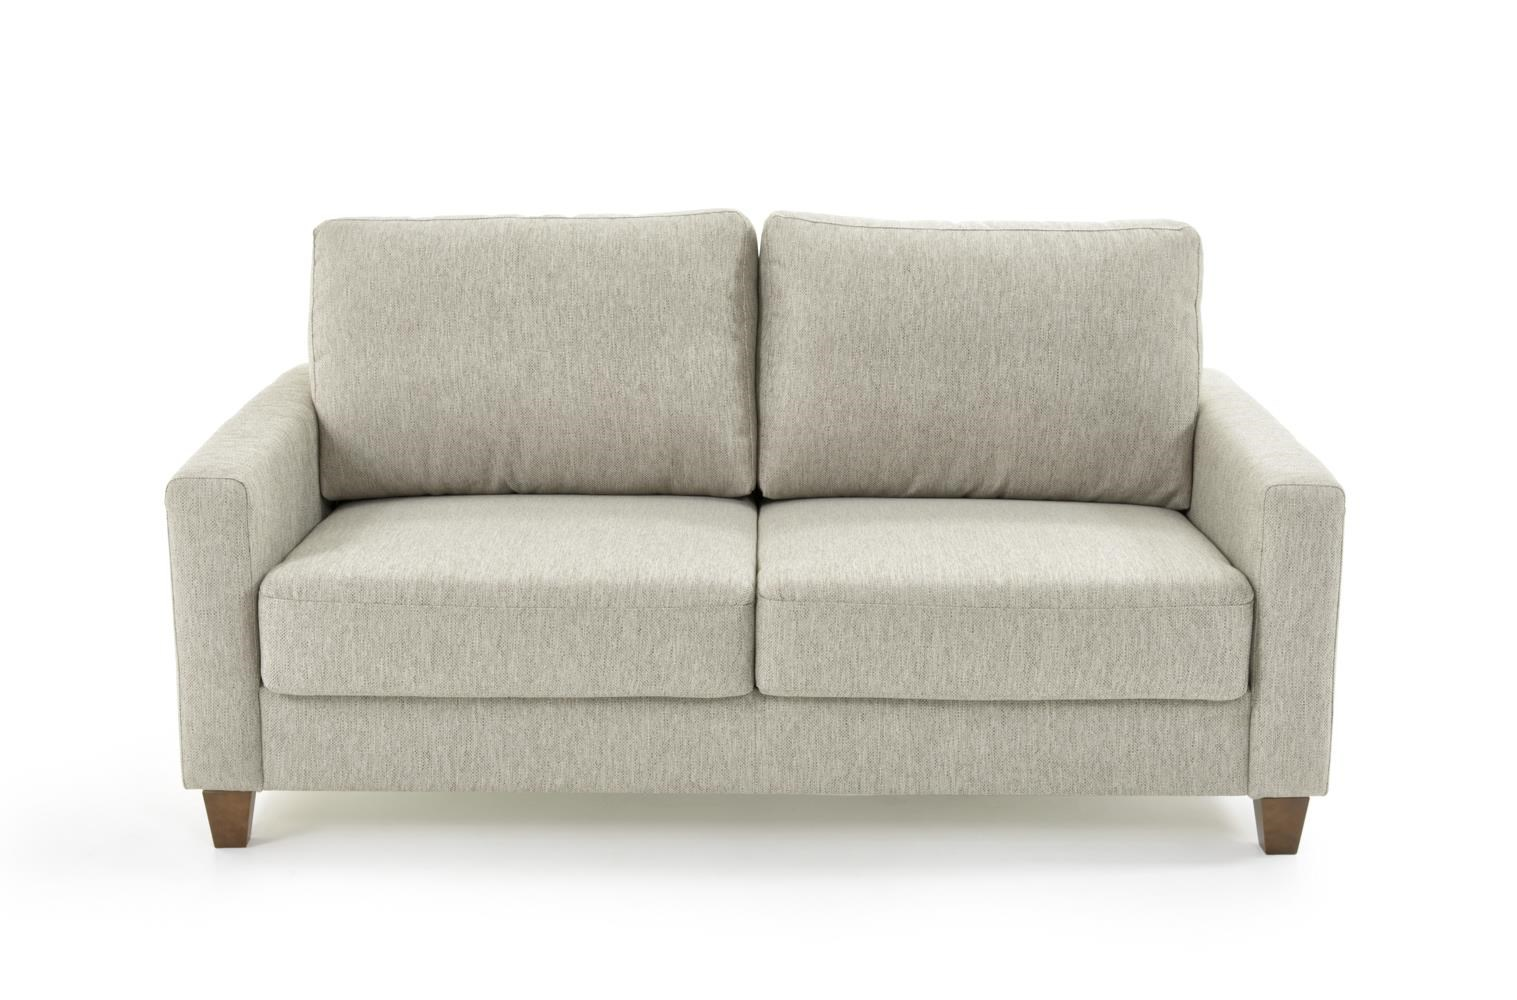 Contemporary Full Size Loveseat Sleeper